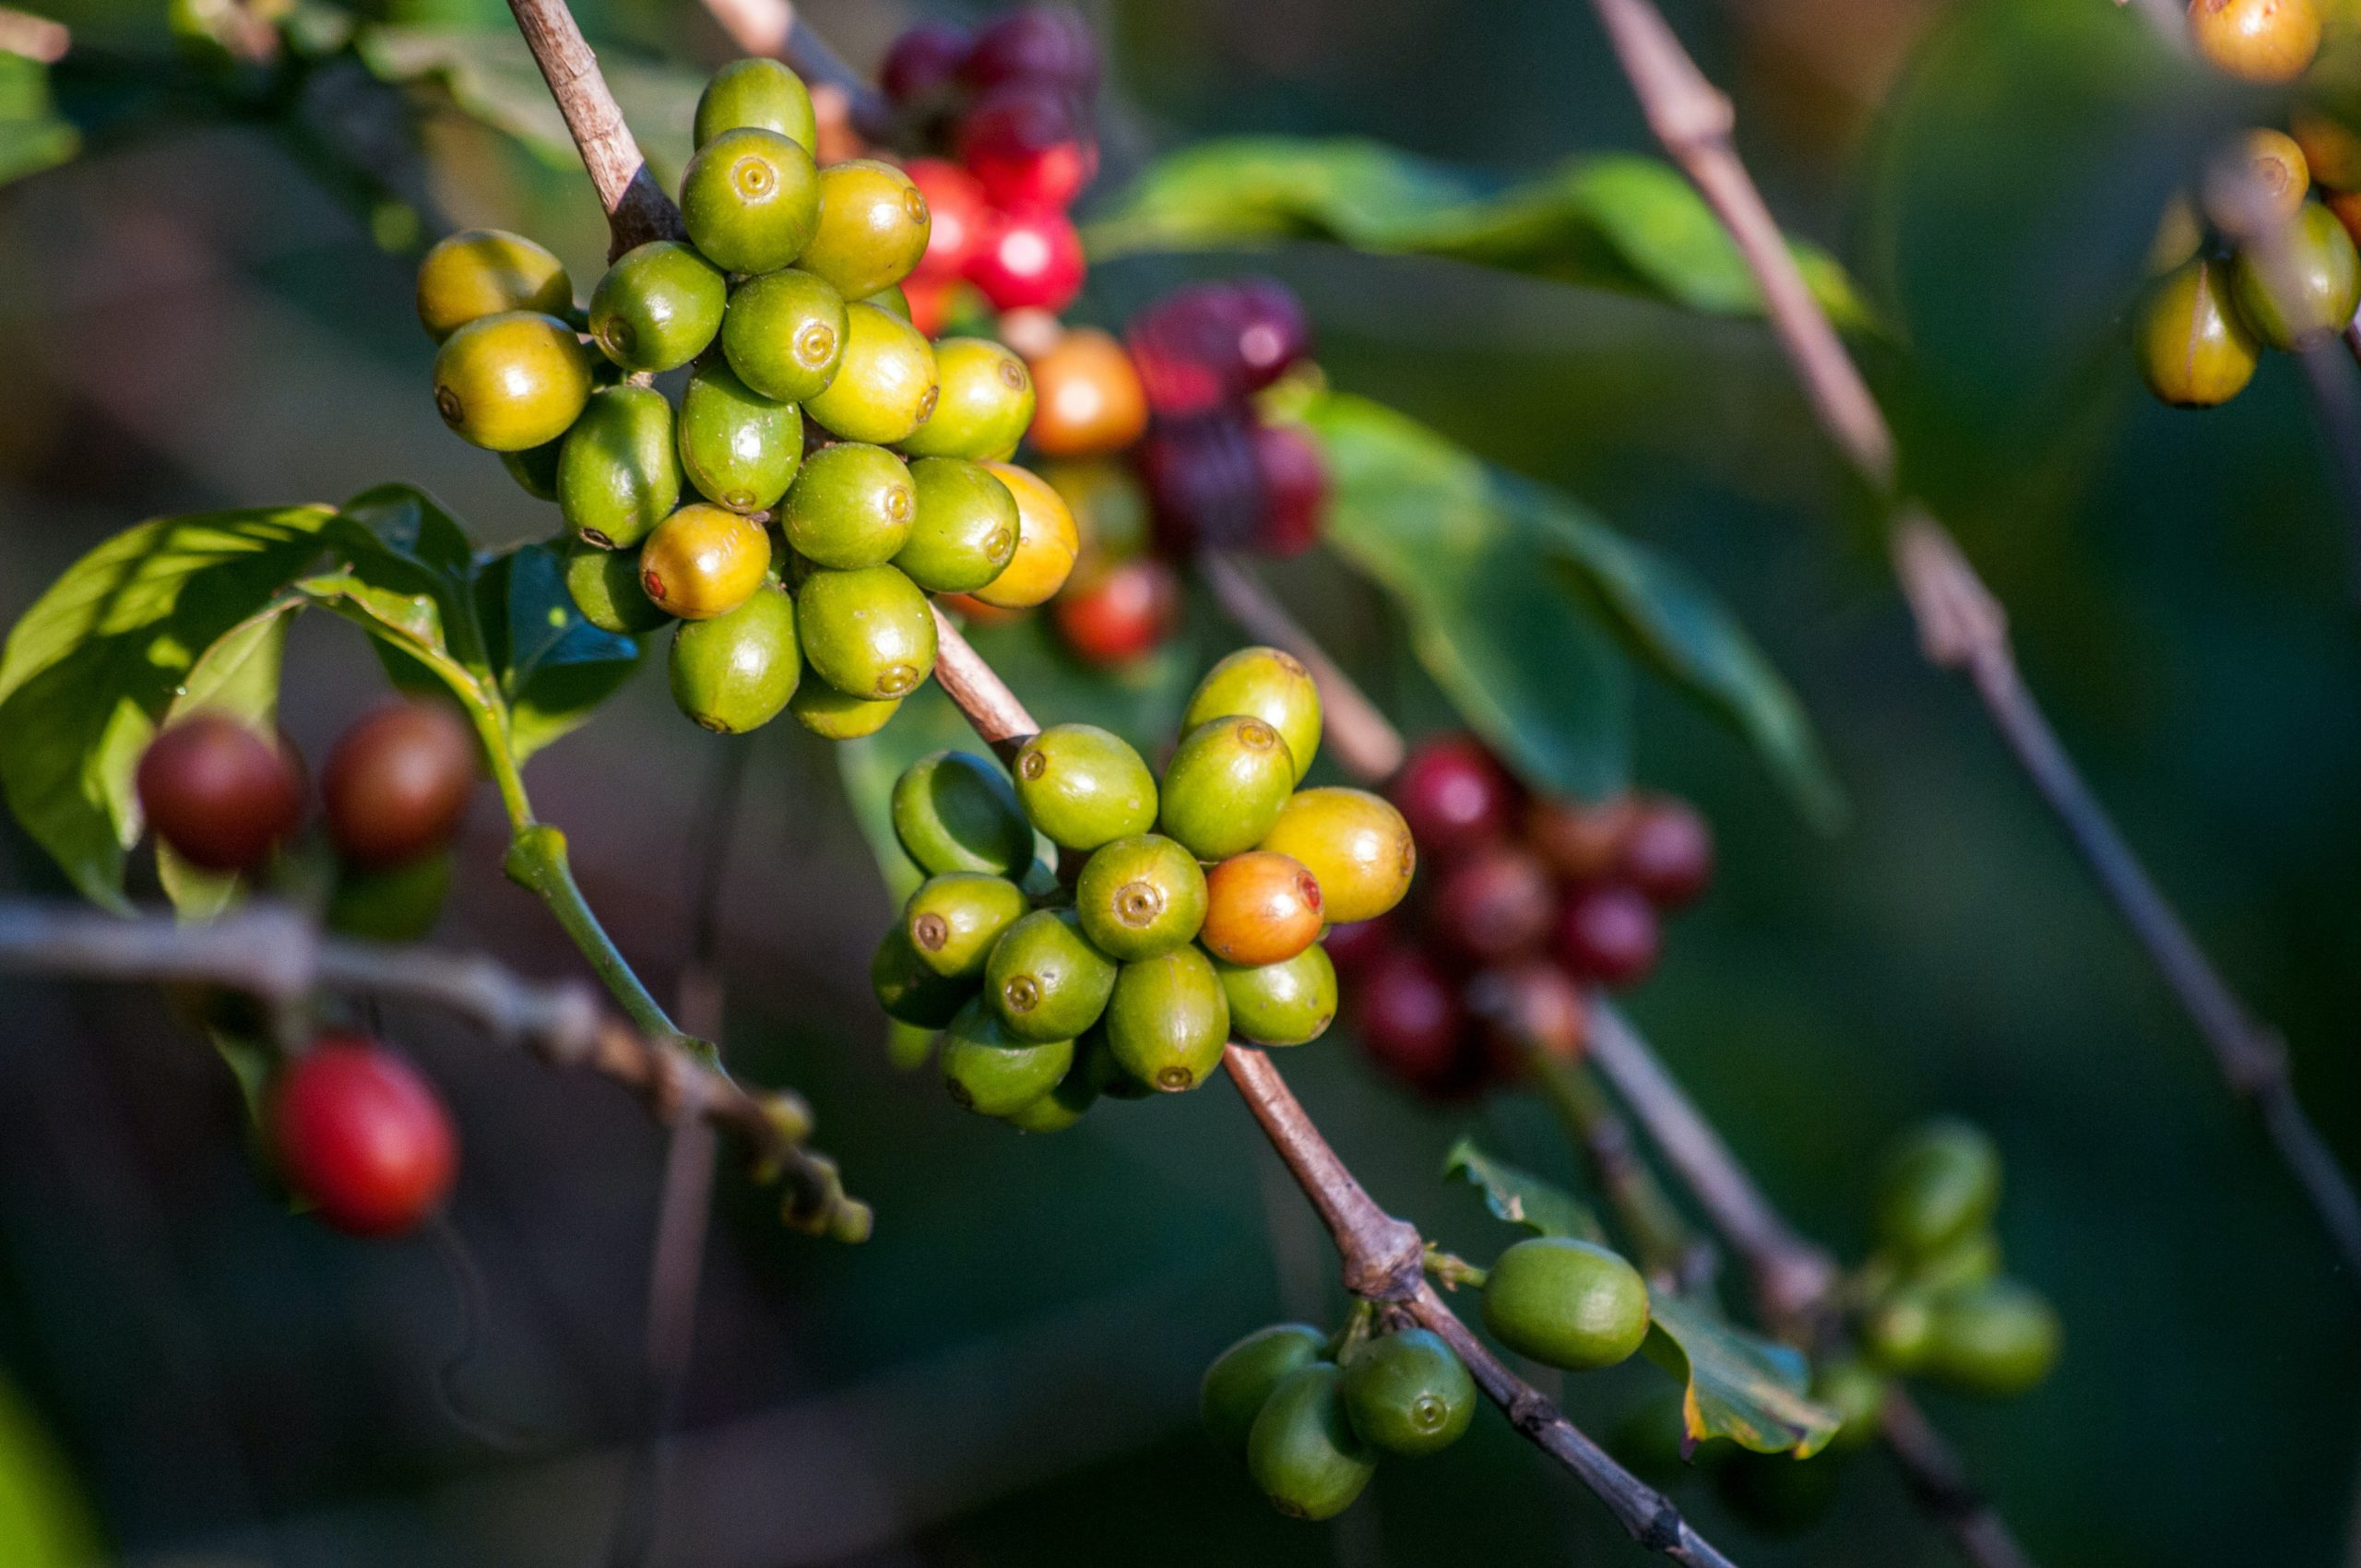 Green and red coffee cherries growing on a plant